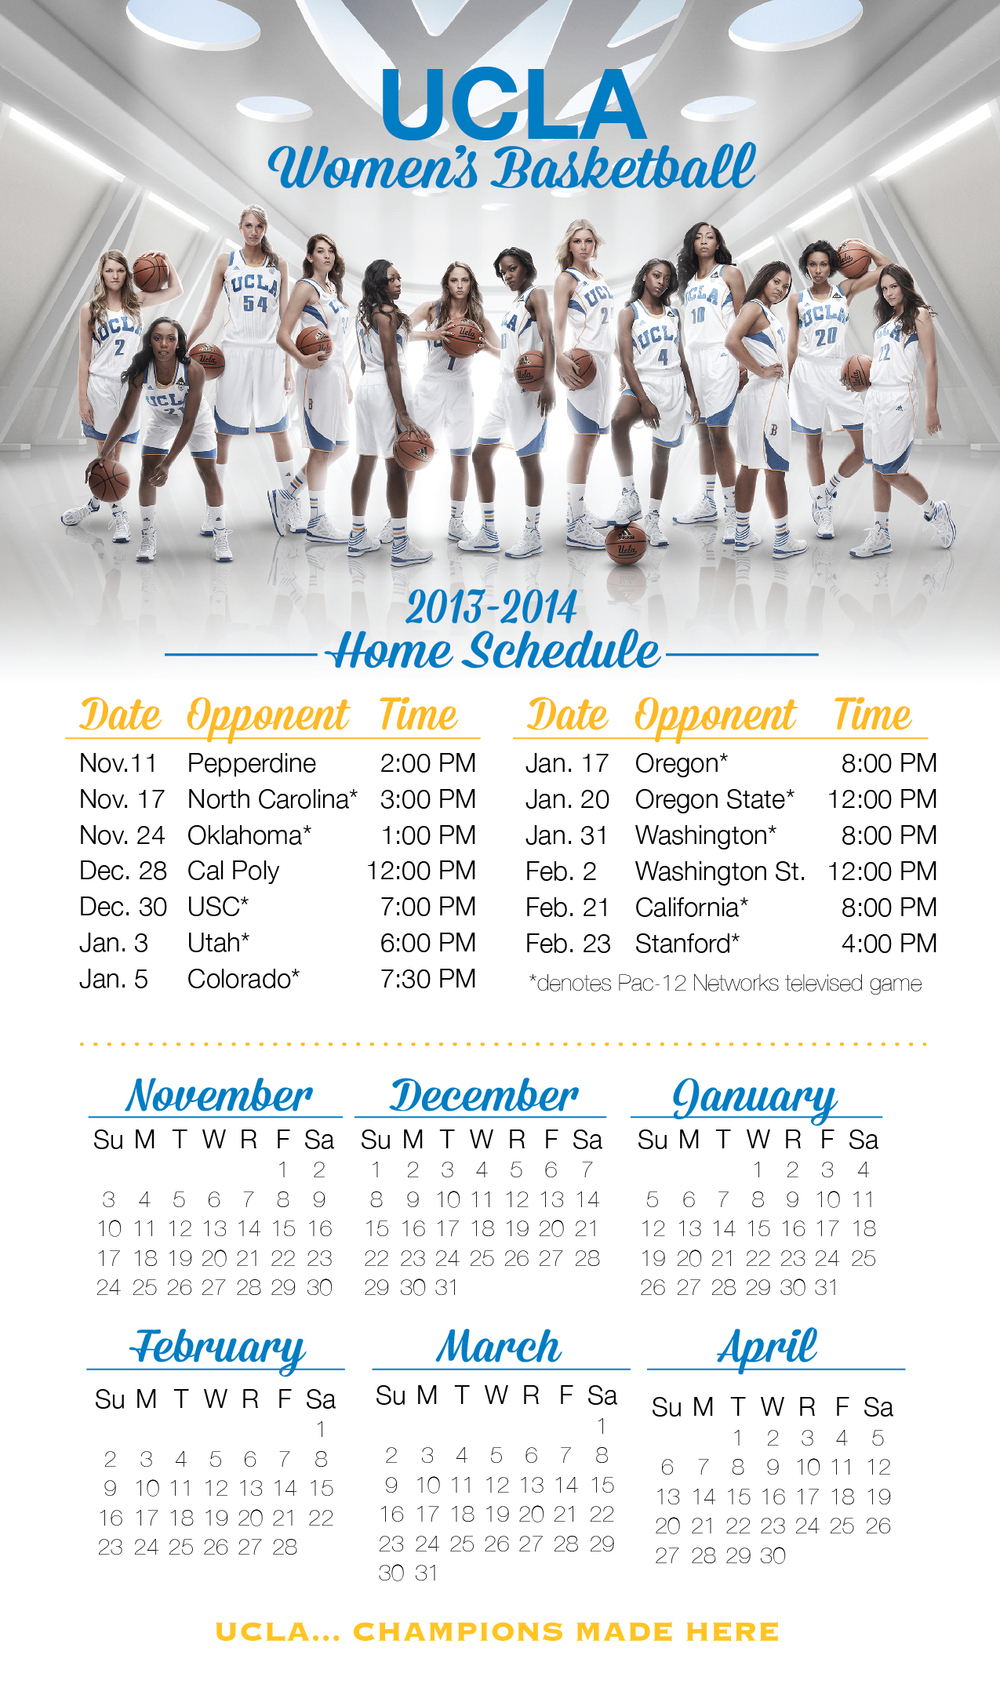 2013-2014 Magnetic Schedule